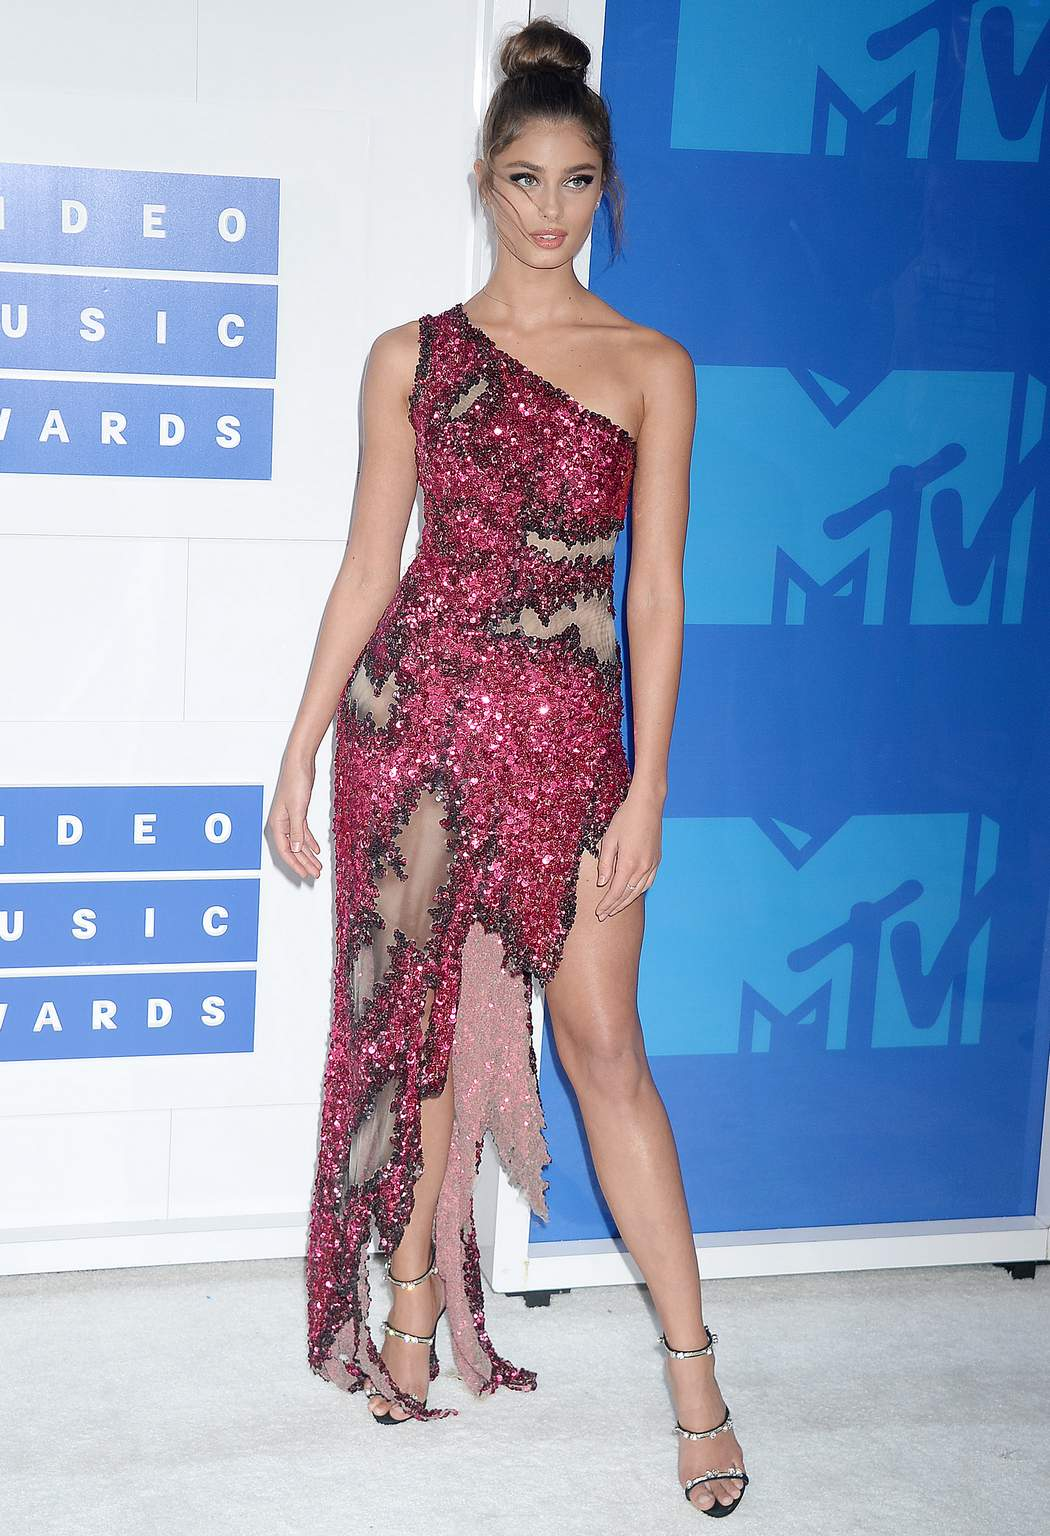 HQ Wallpapers of 'Victoria's Secret' Model Taylor Marie Hill – 2016 MTV Video Music Awards in NYC